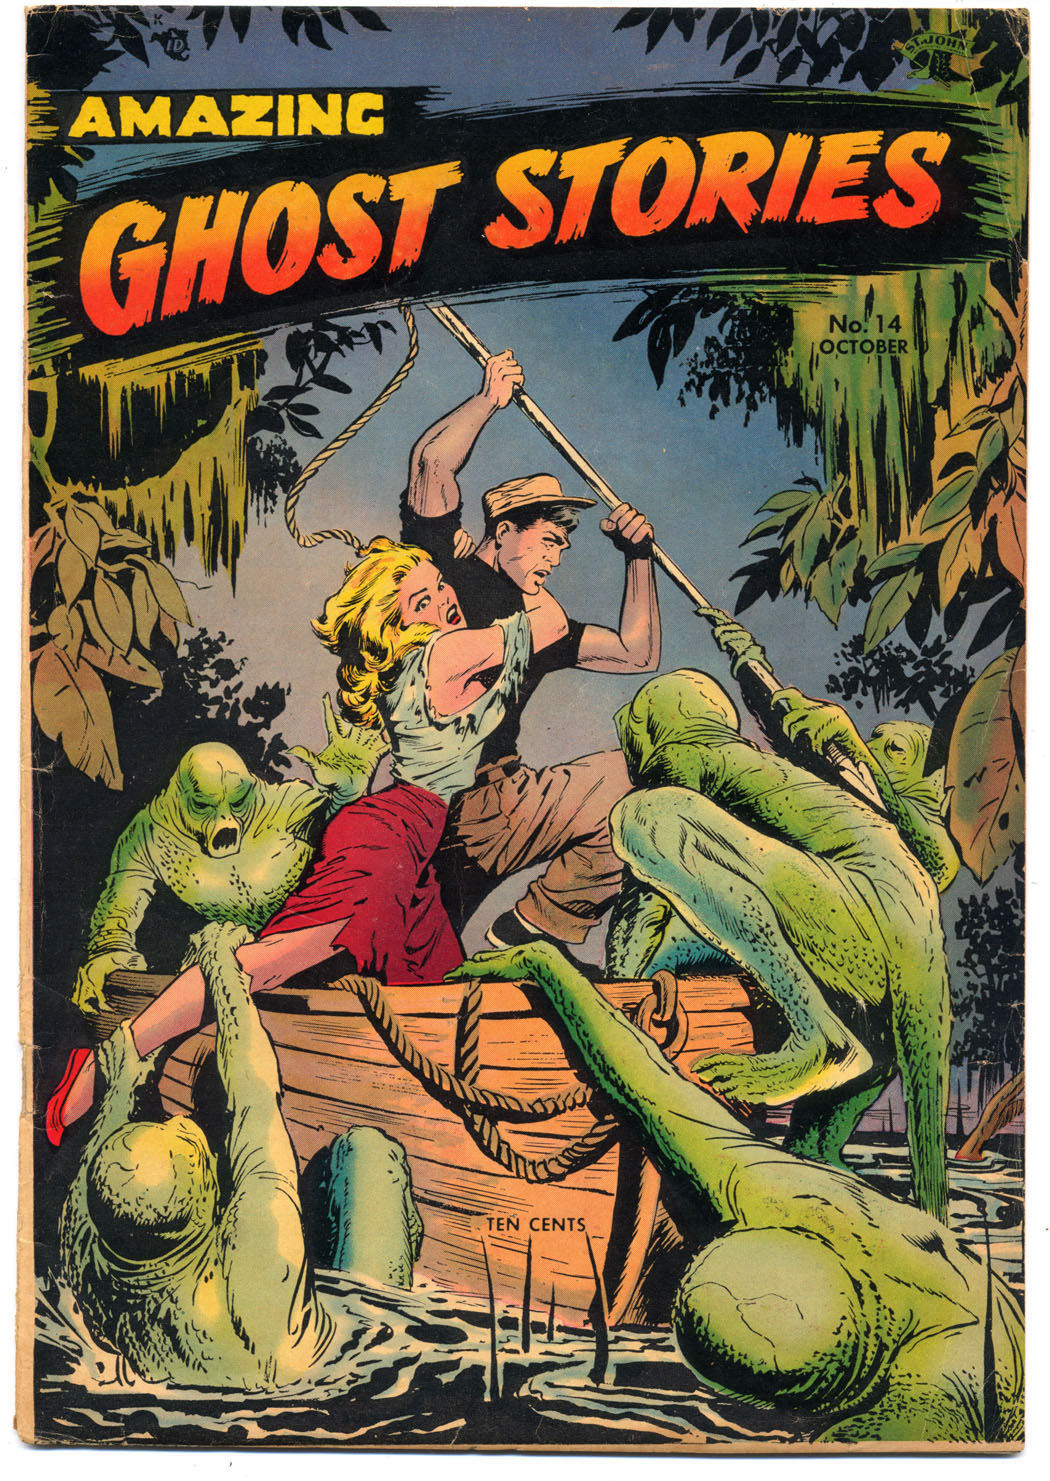 COVER-Amazing Ghost Stores 14 1954 scan provided by collector Edward Fields